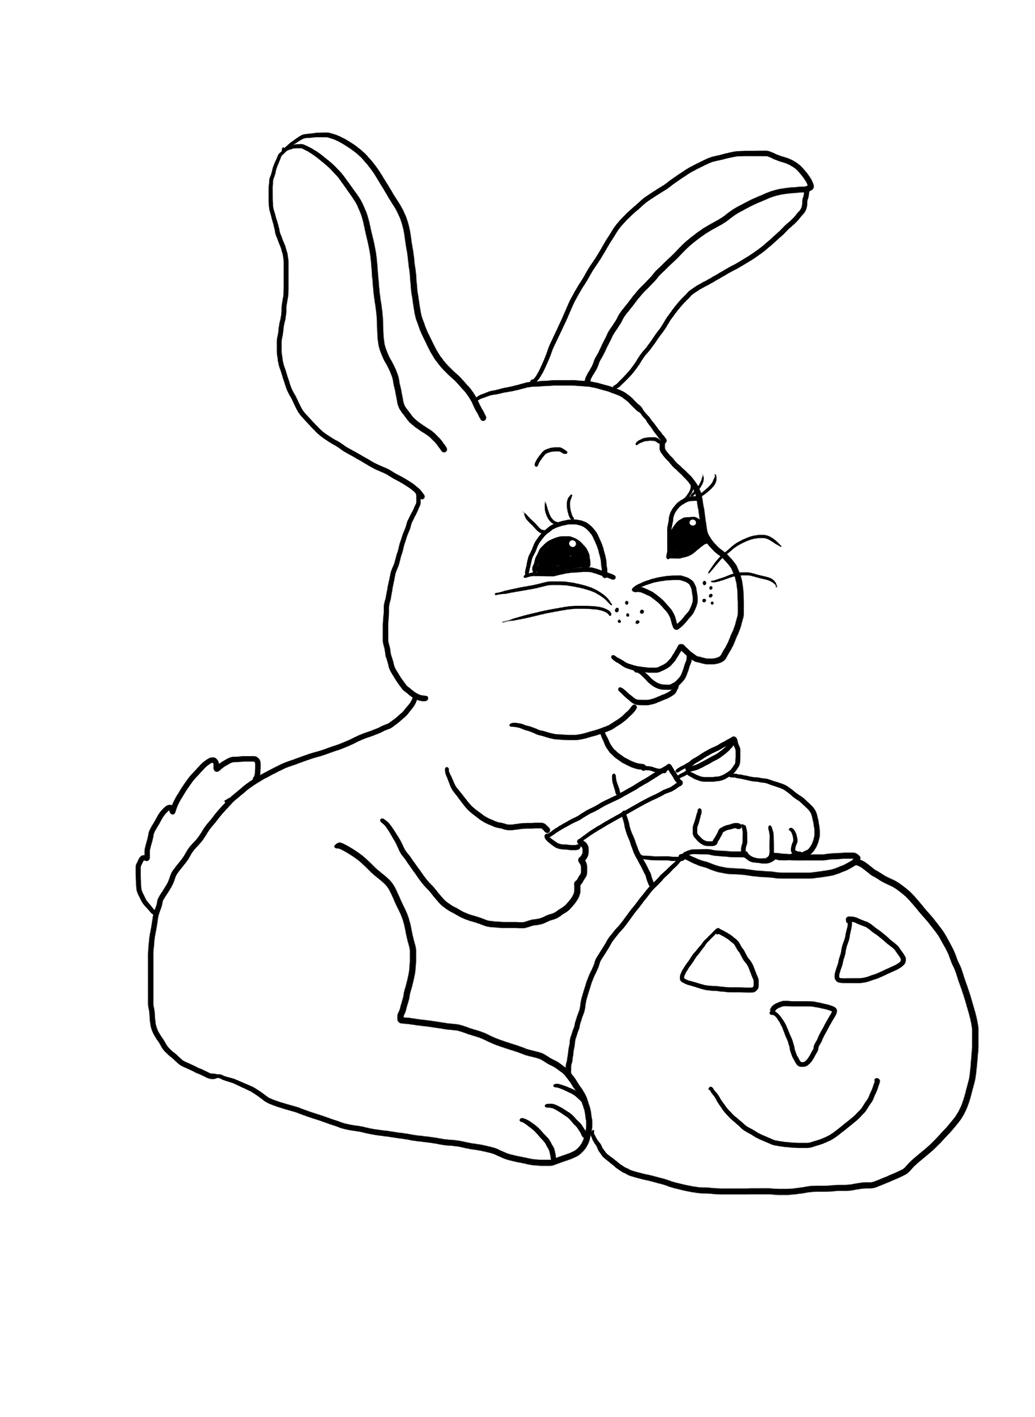 halloween bunny carving a pumpkin head